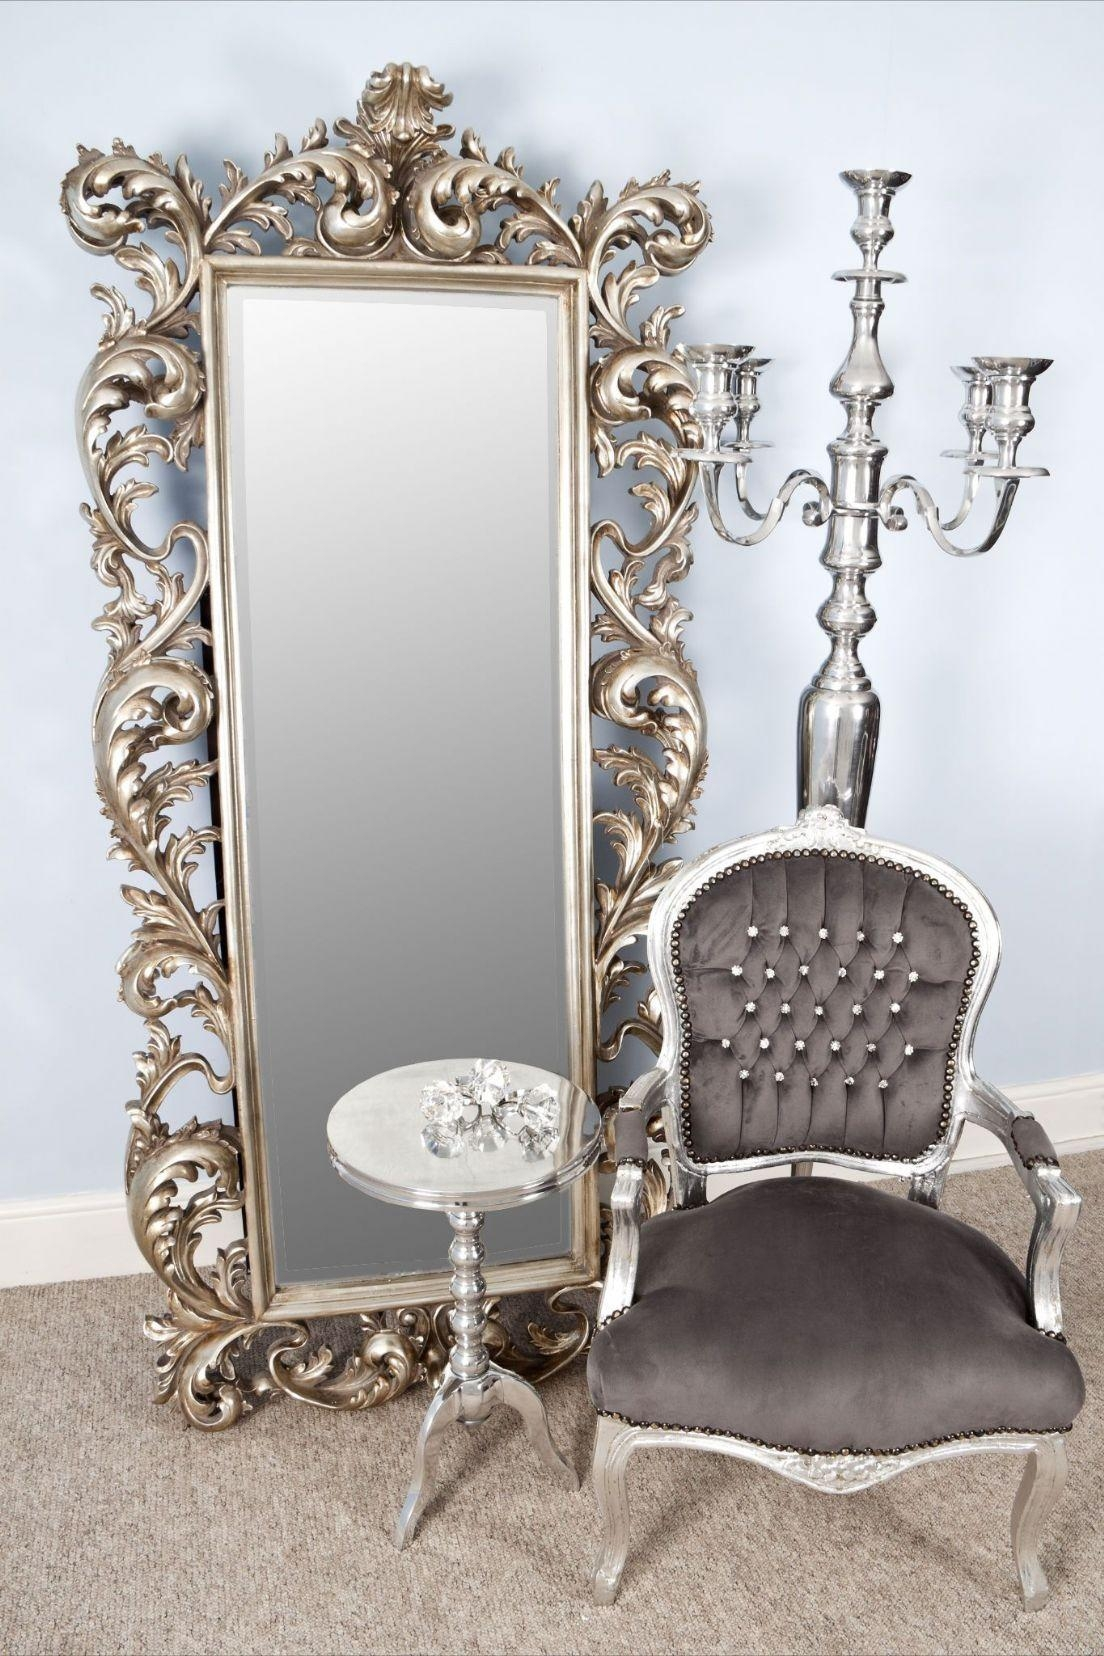 Ornate Mirrors For Sale 125 Awesome Exterior With Large Wall Regarding Very Large Mirrors For Sale (View 5 of 20)